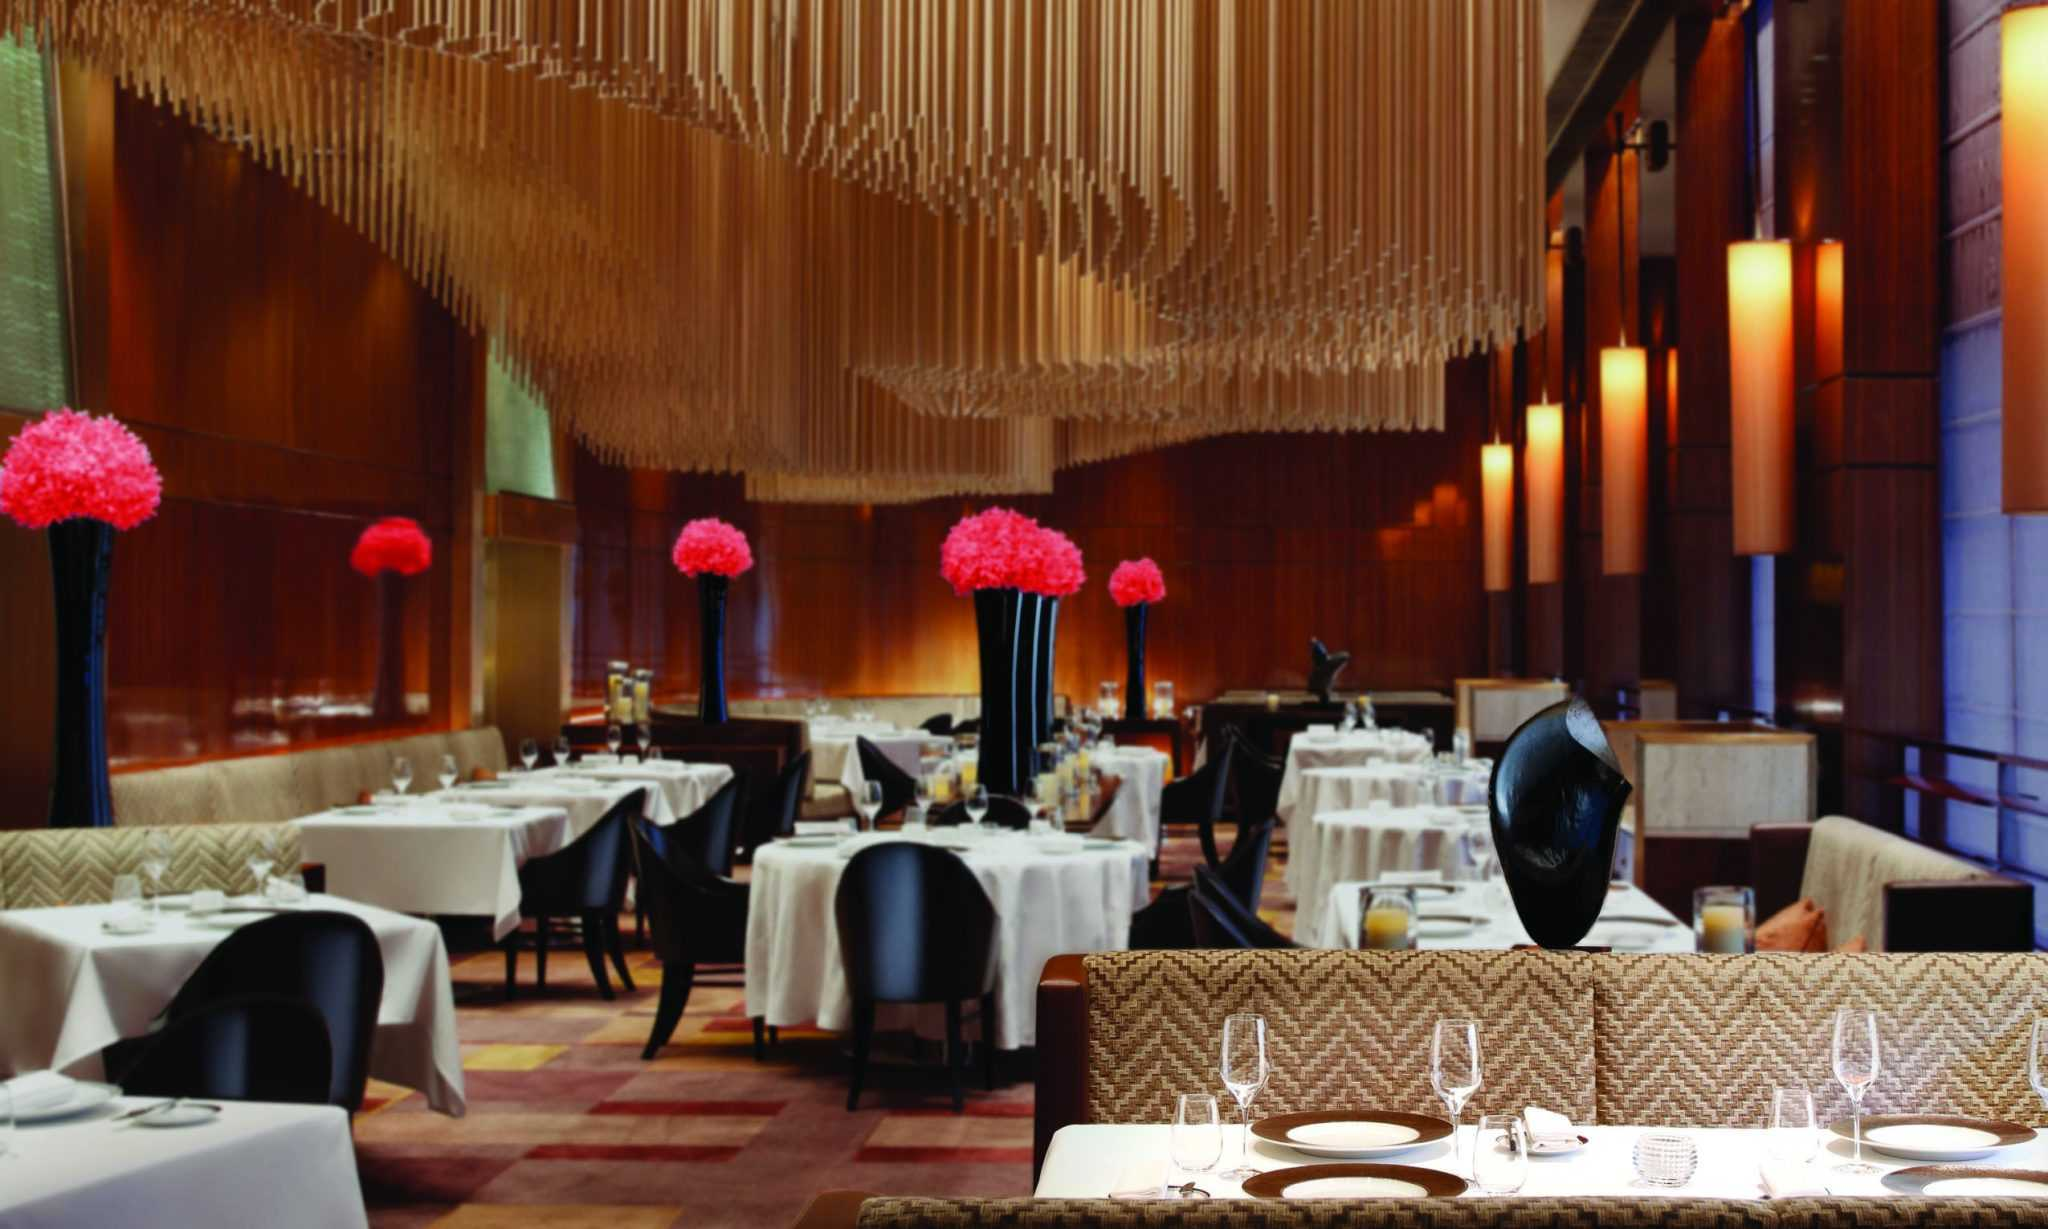 Los restaurantes más exclusivos de Hong Kong